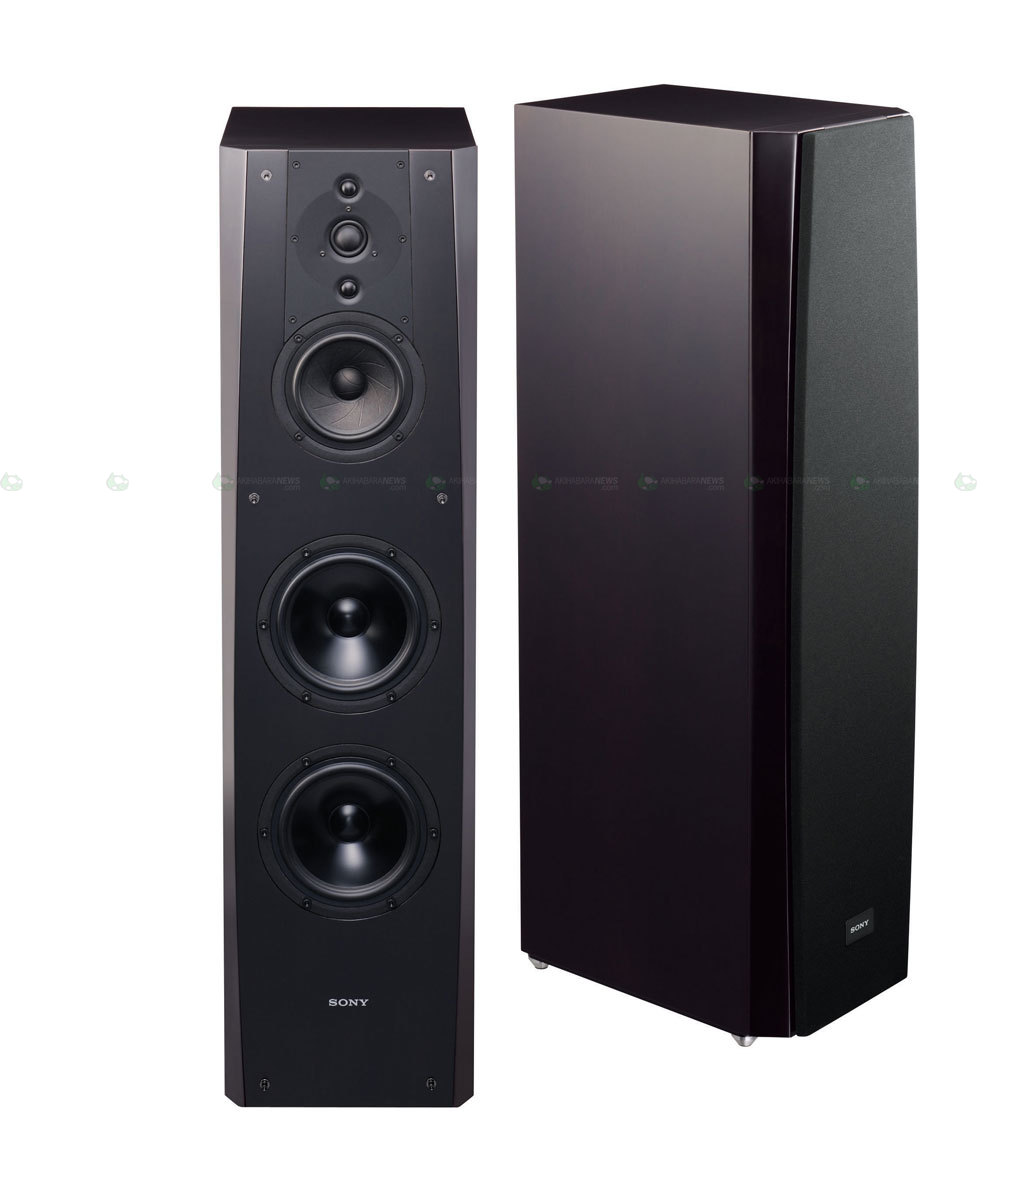 Sony Home Stereo Systems - Bing images